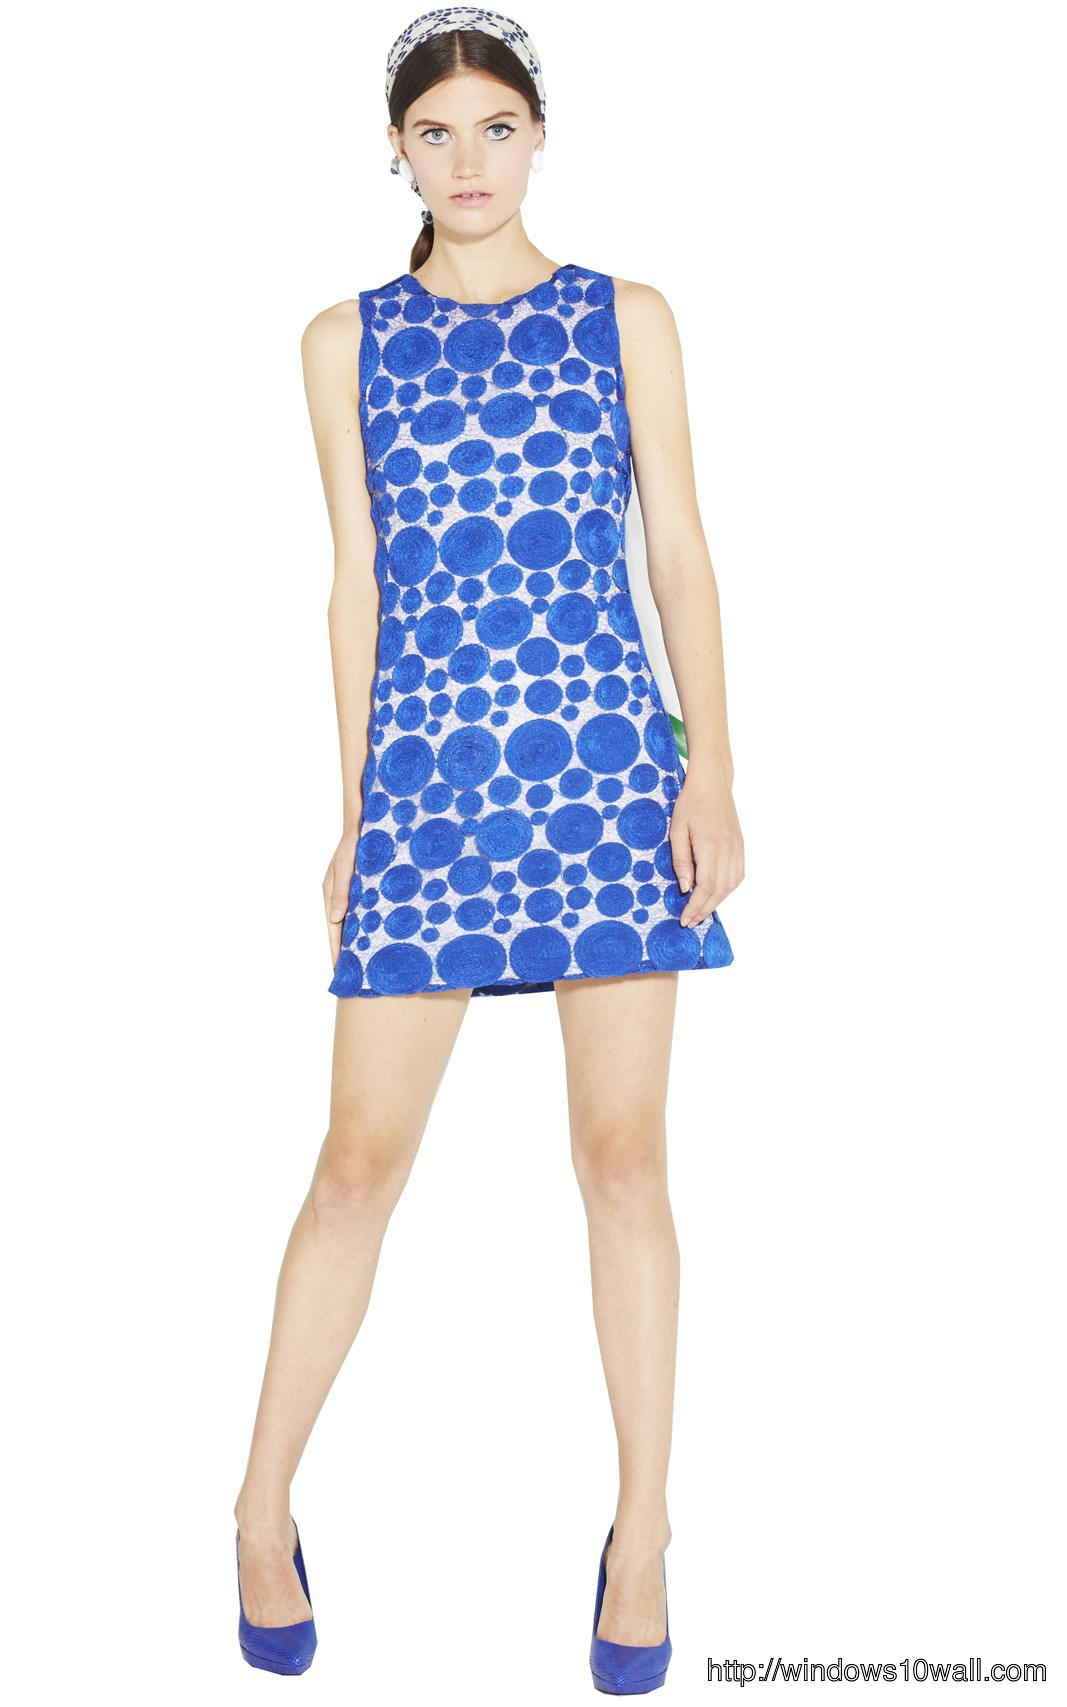 sleeveless-dress-with-blue-dots-background-wallpaper